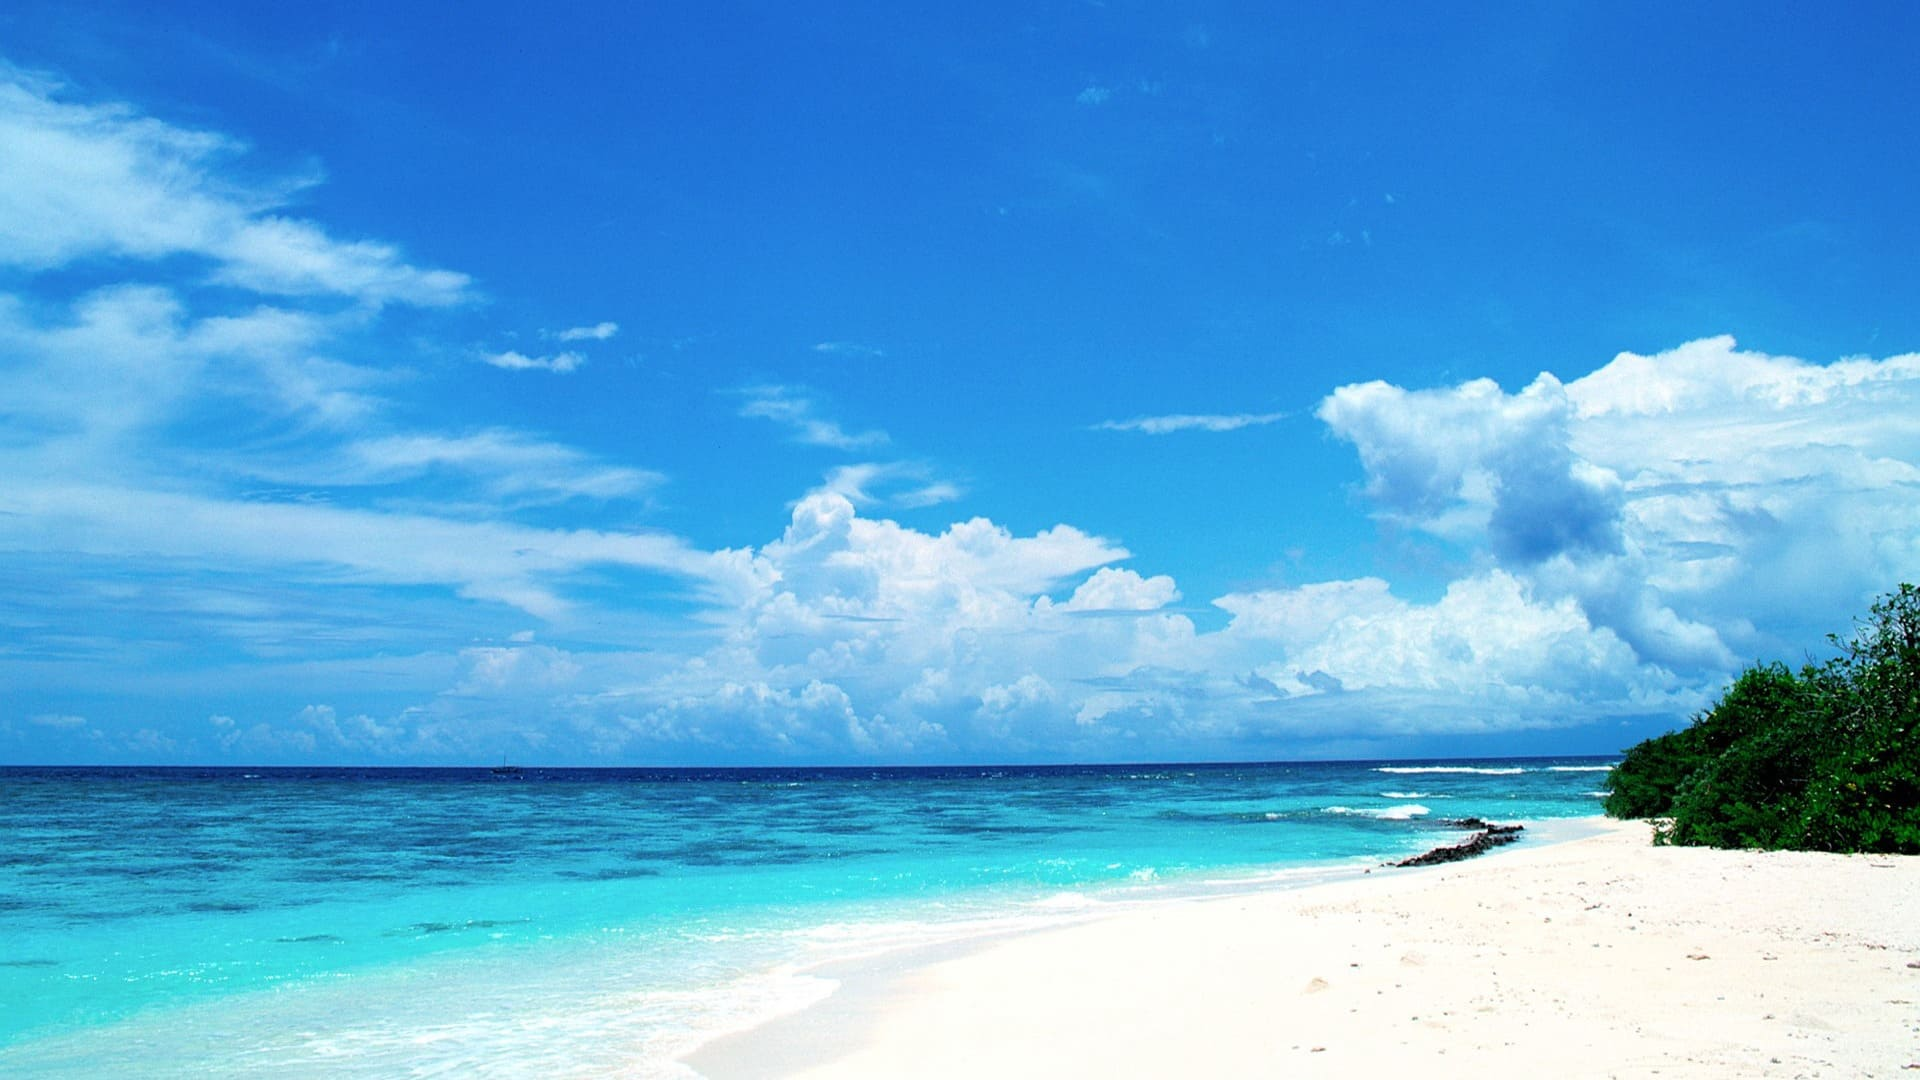 maldives_beach_summer_wallpaper_1920x1080